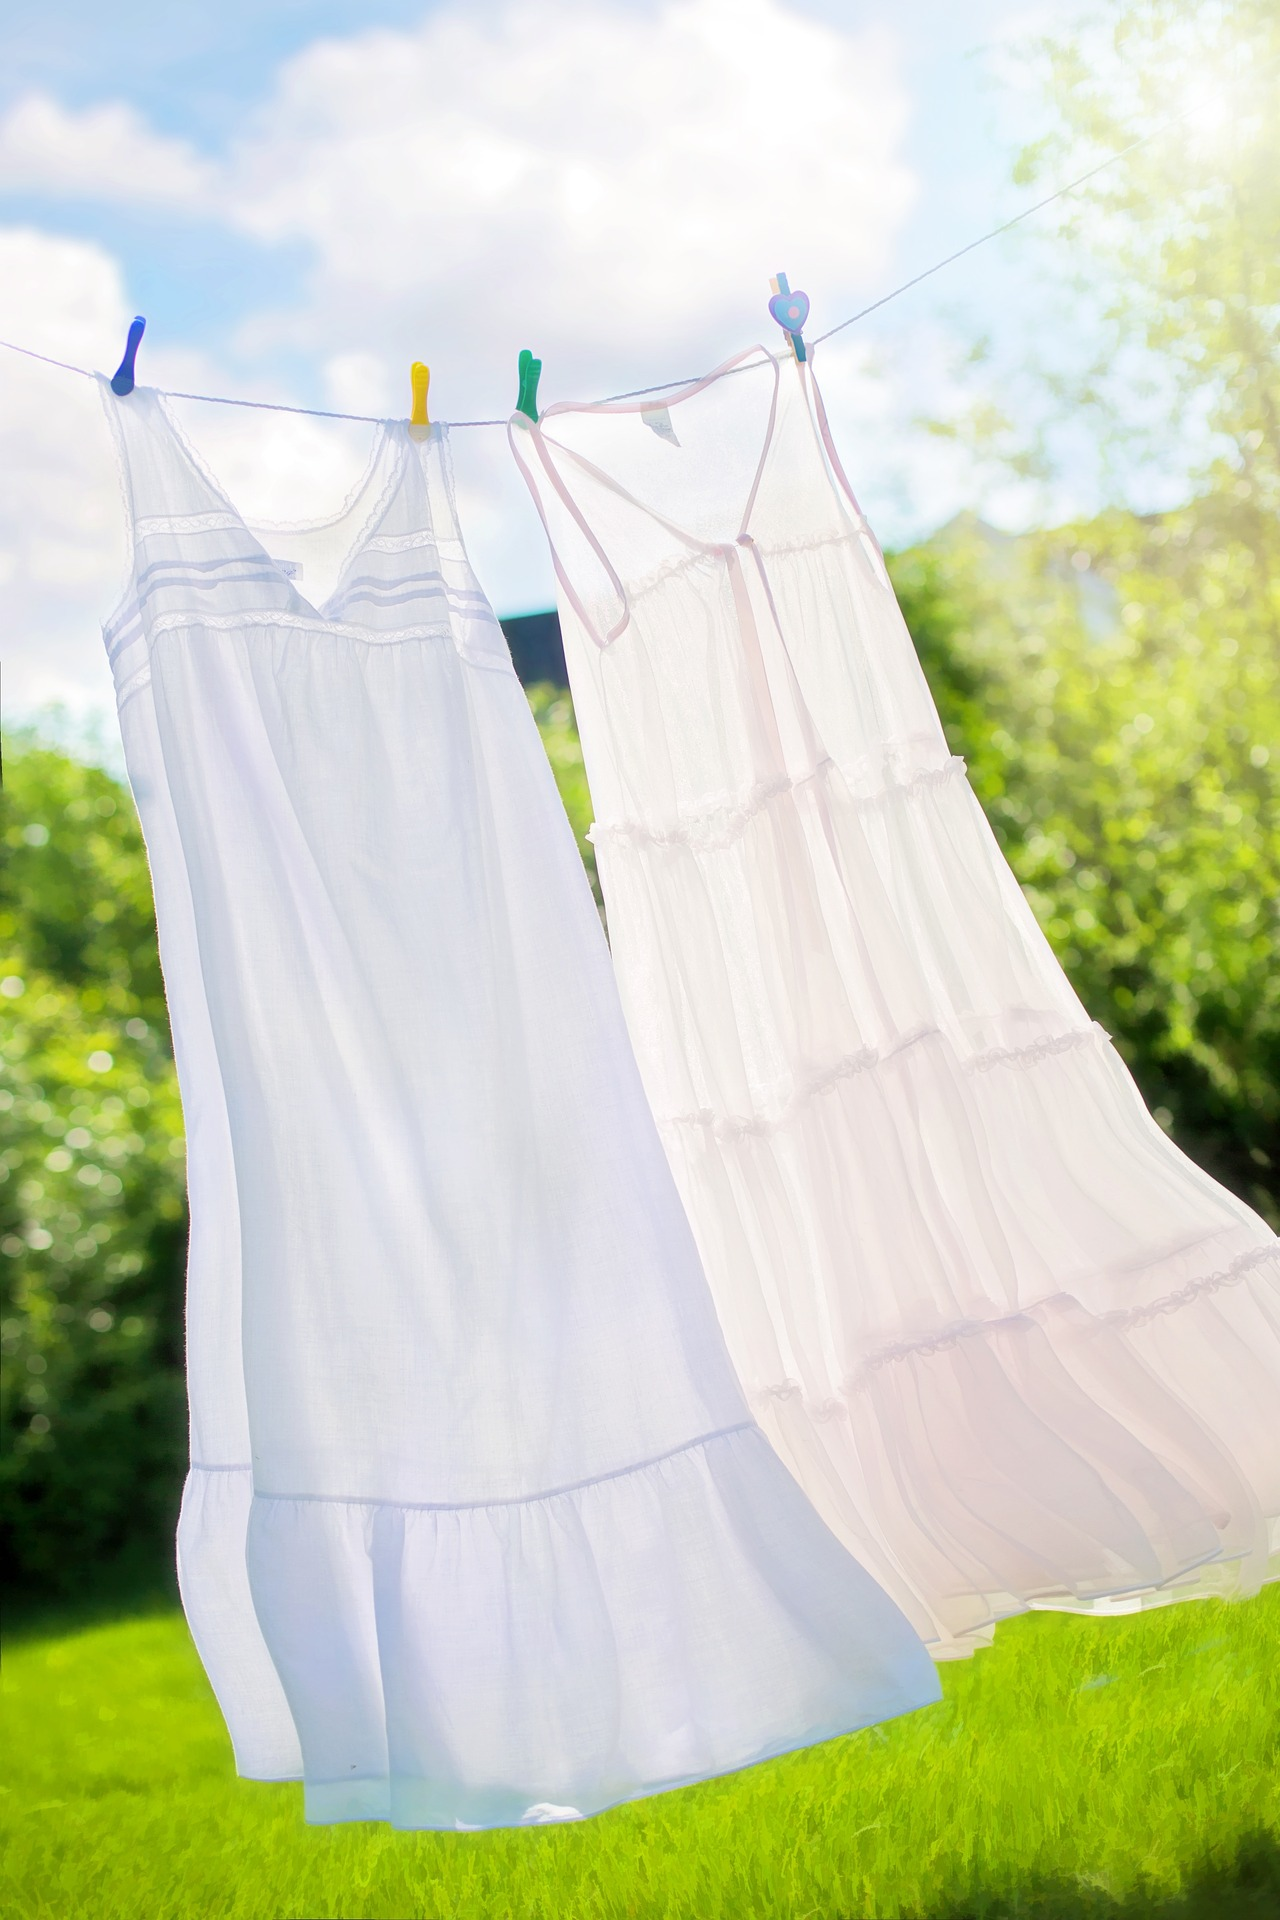 Life Without a Clothes Dryer